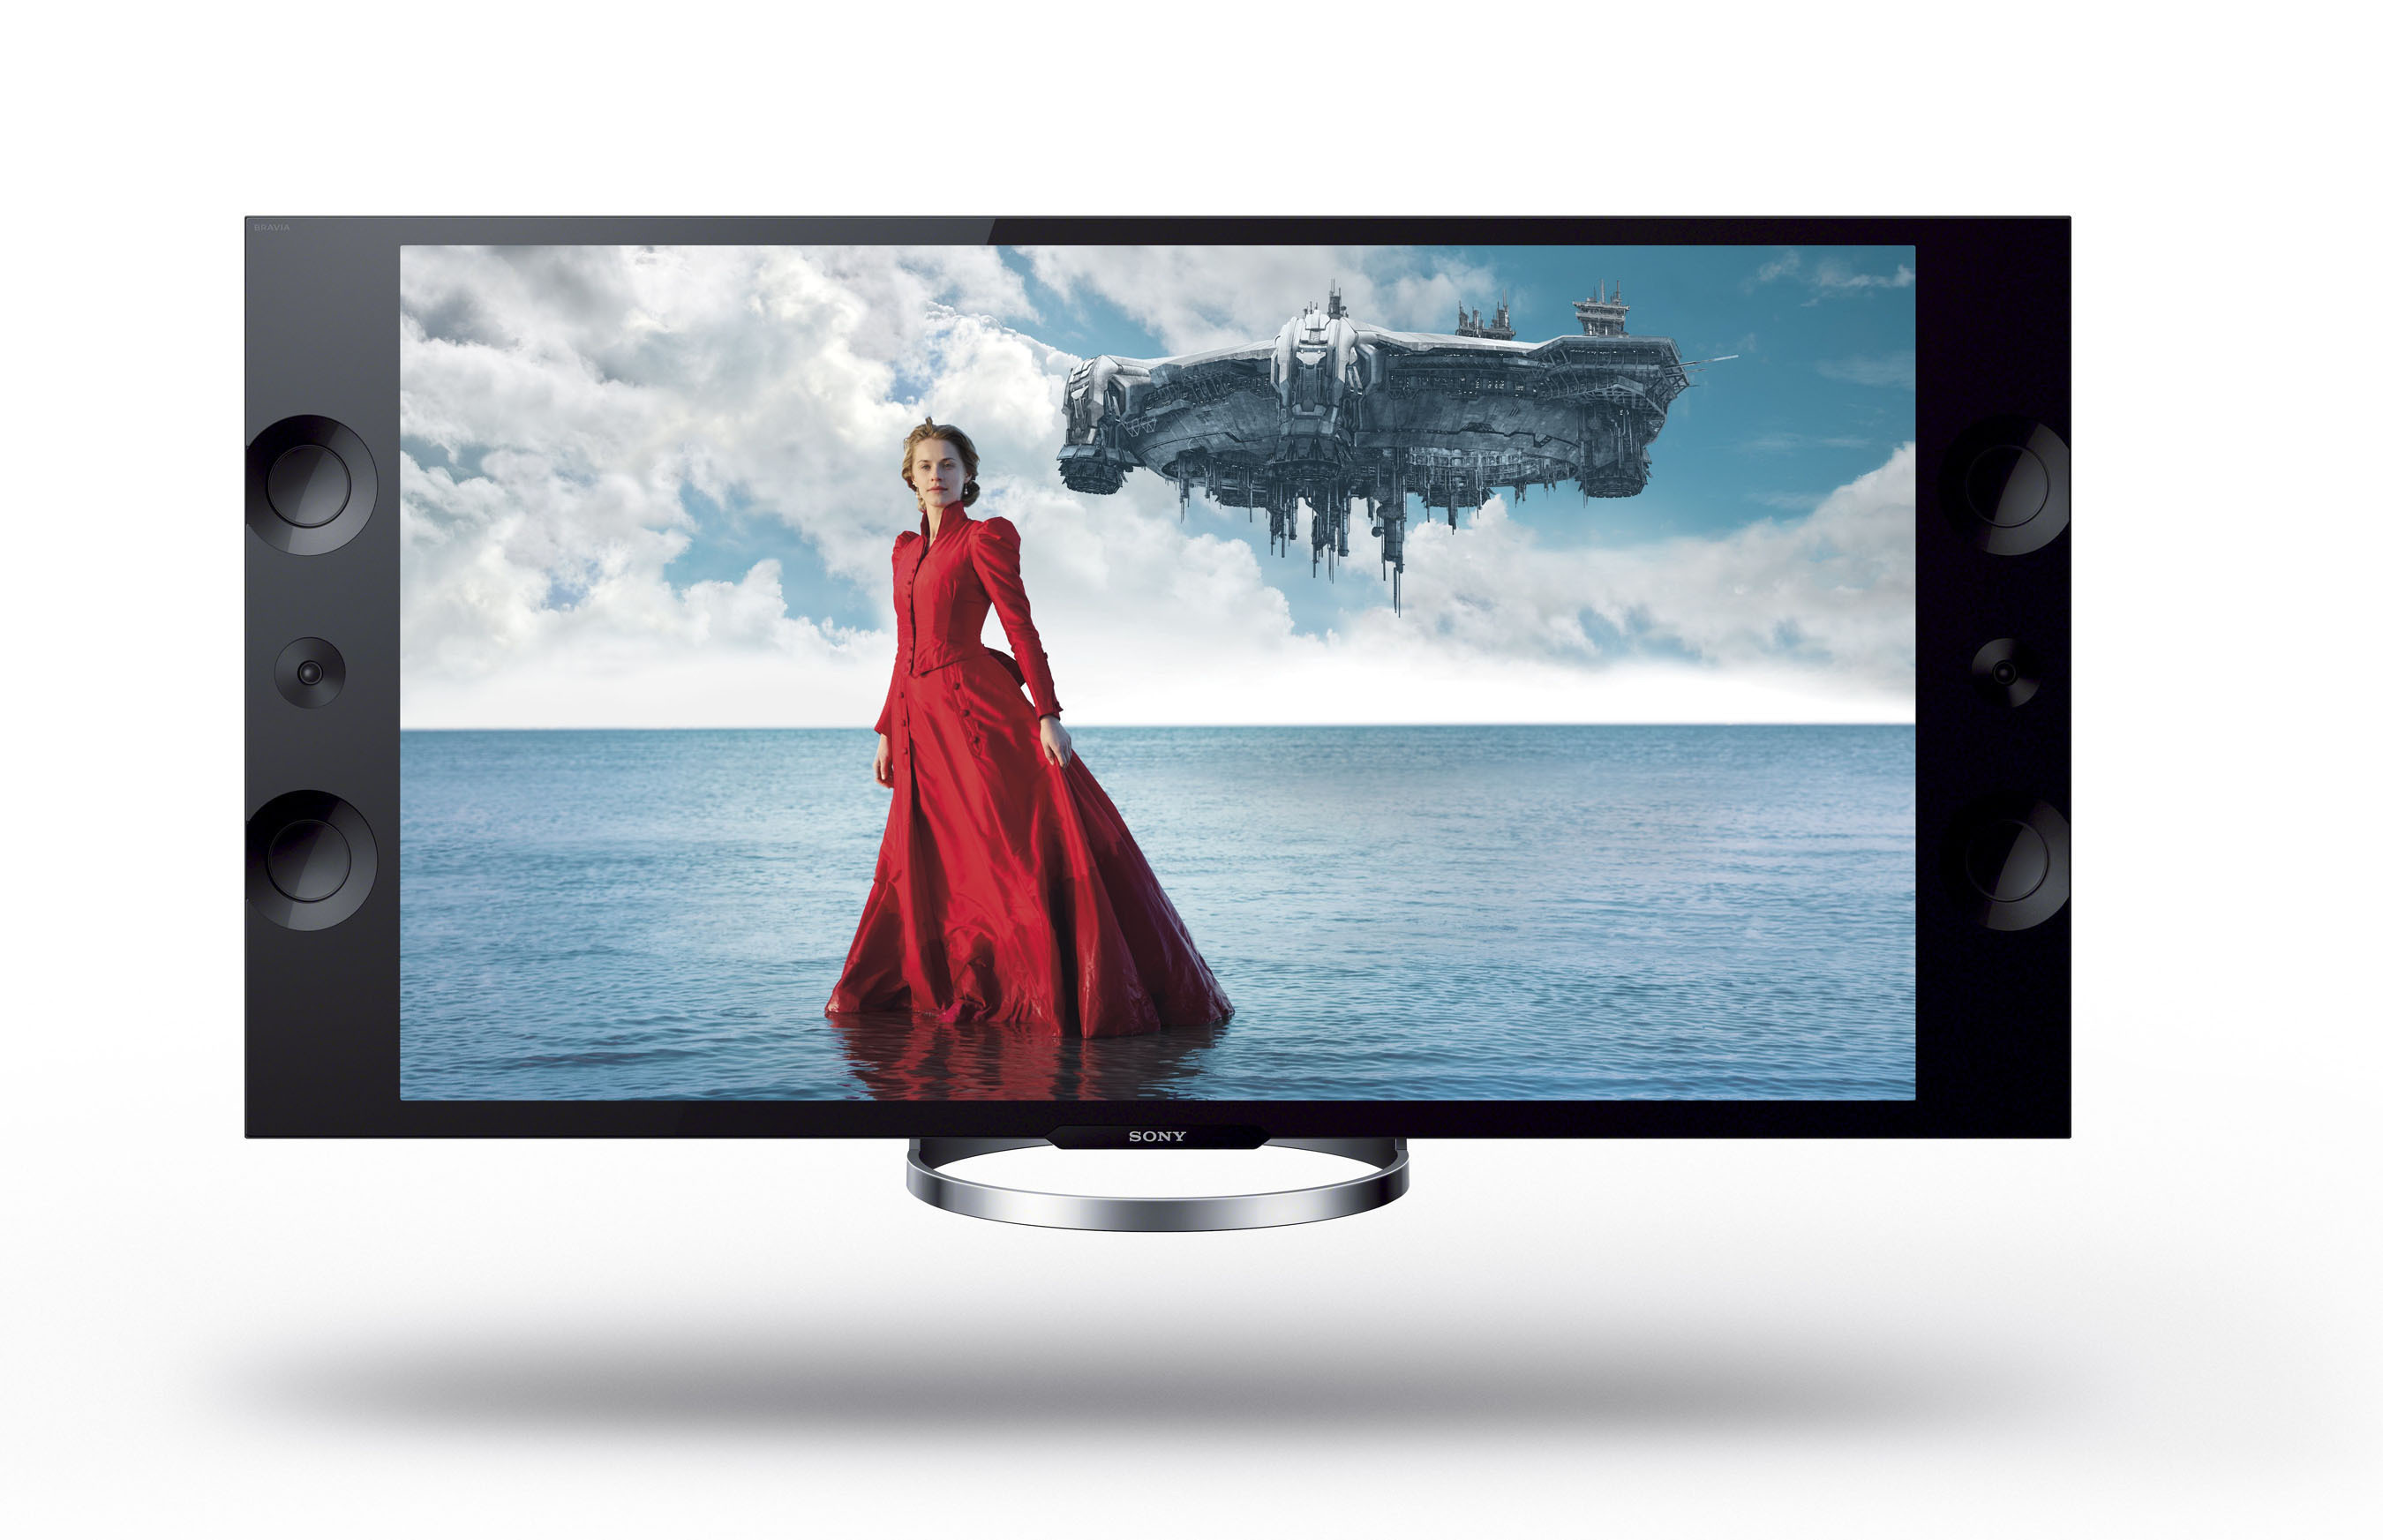 SONY ELECTRONICS 4K ULTRA HD TV